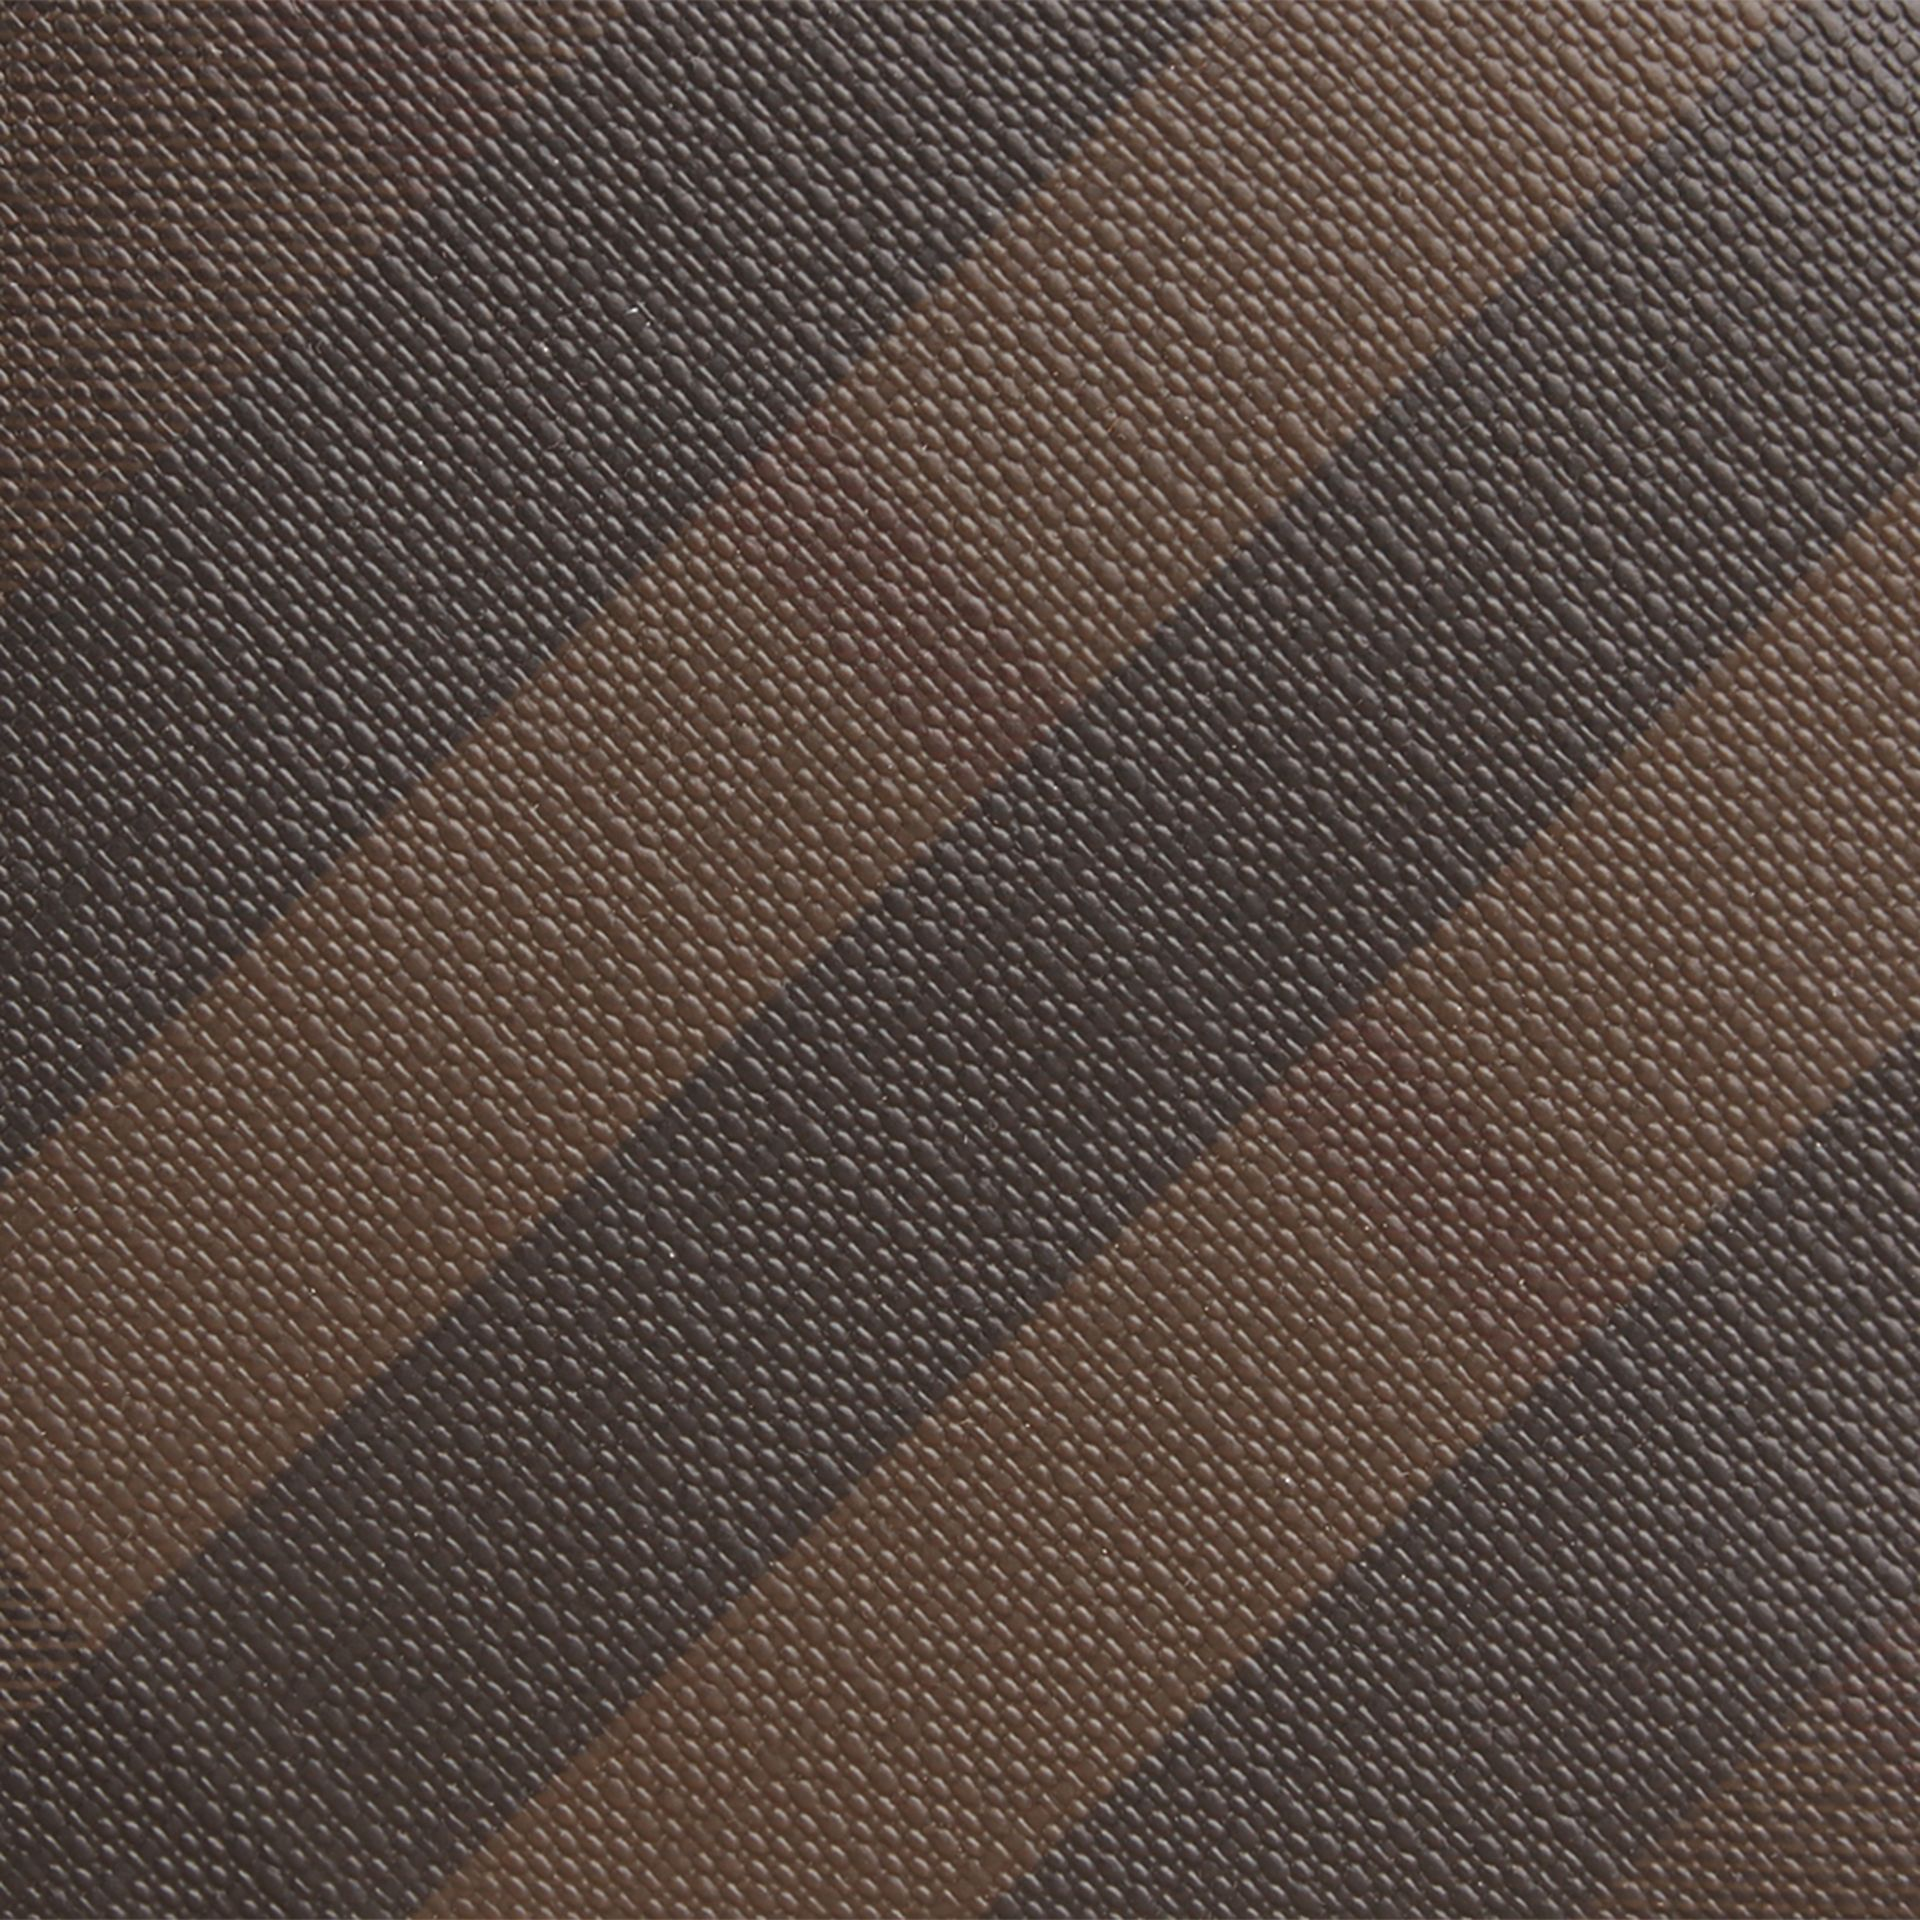 London Check ID Wallet in Chocolate/black - Men | Burberry - gallery image 2